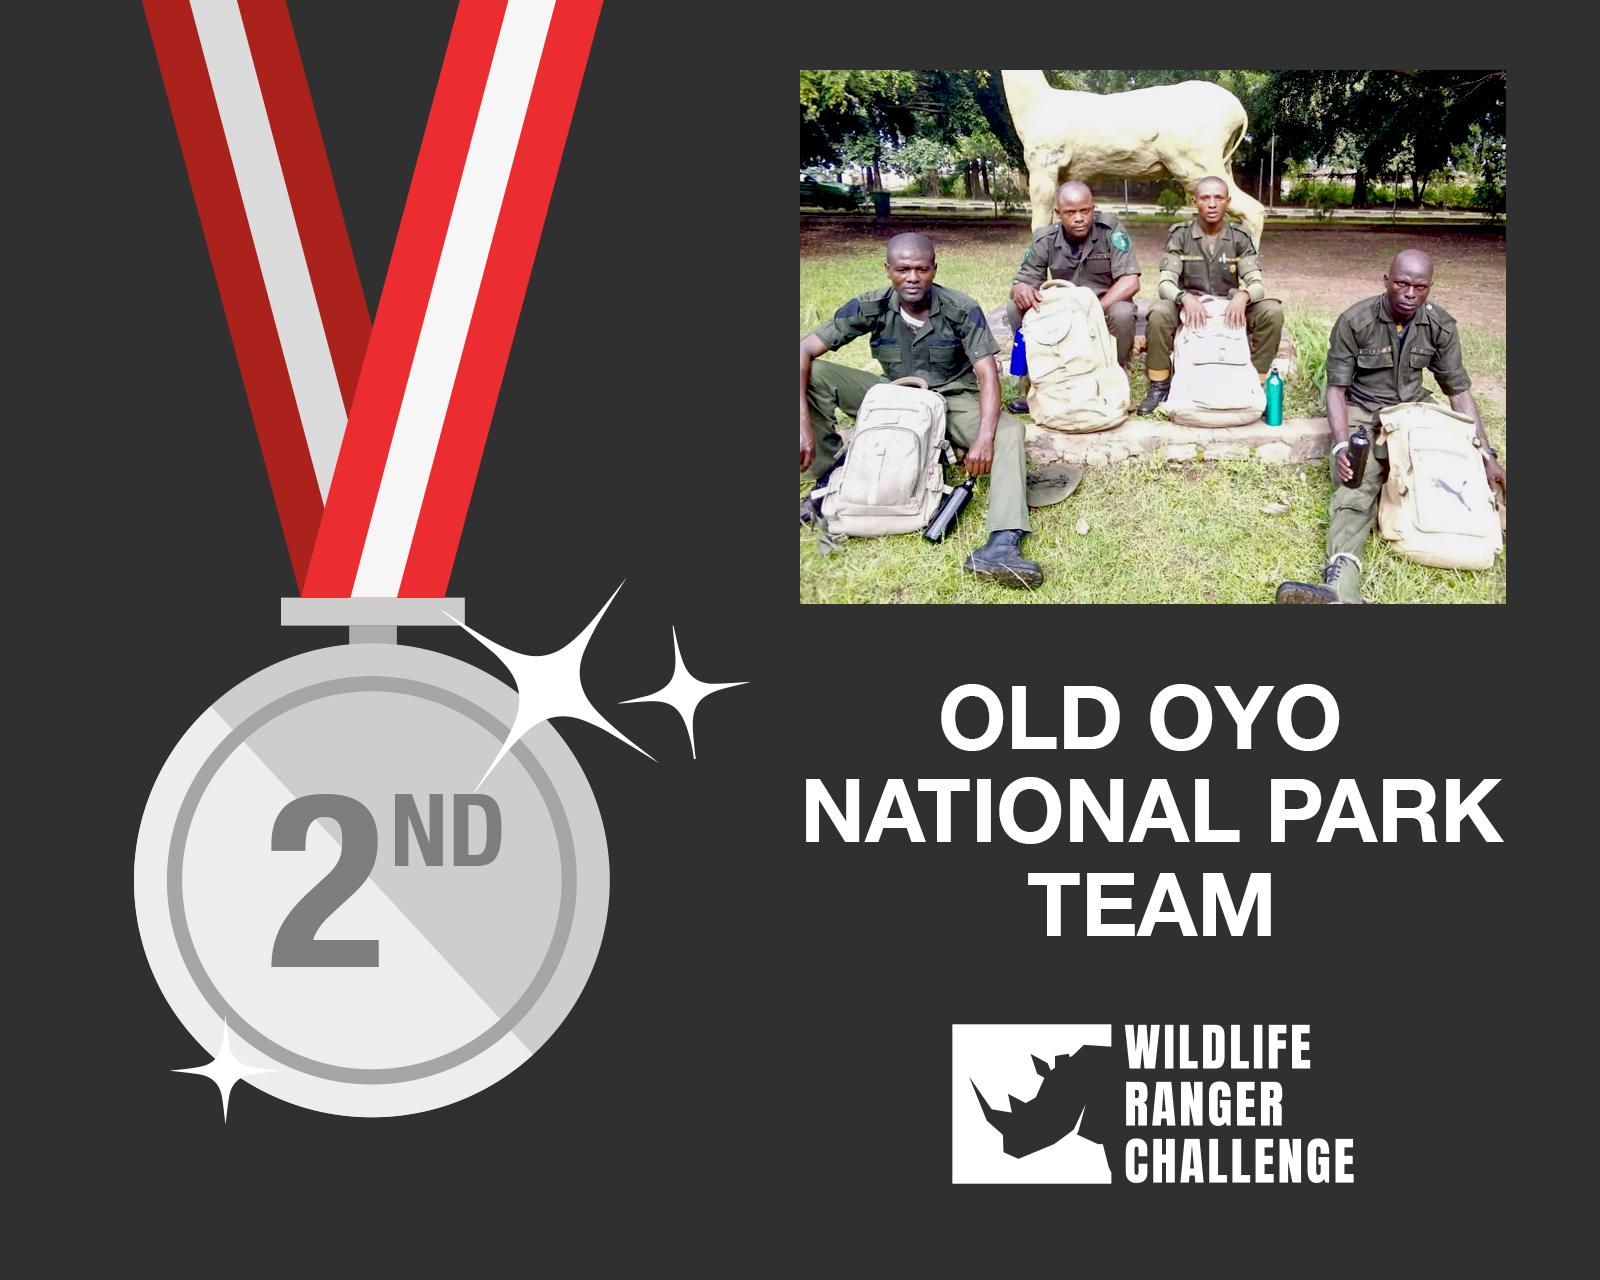 Old Oyo National Park Team